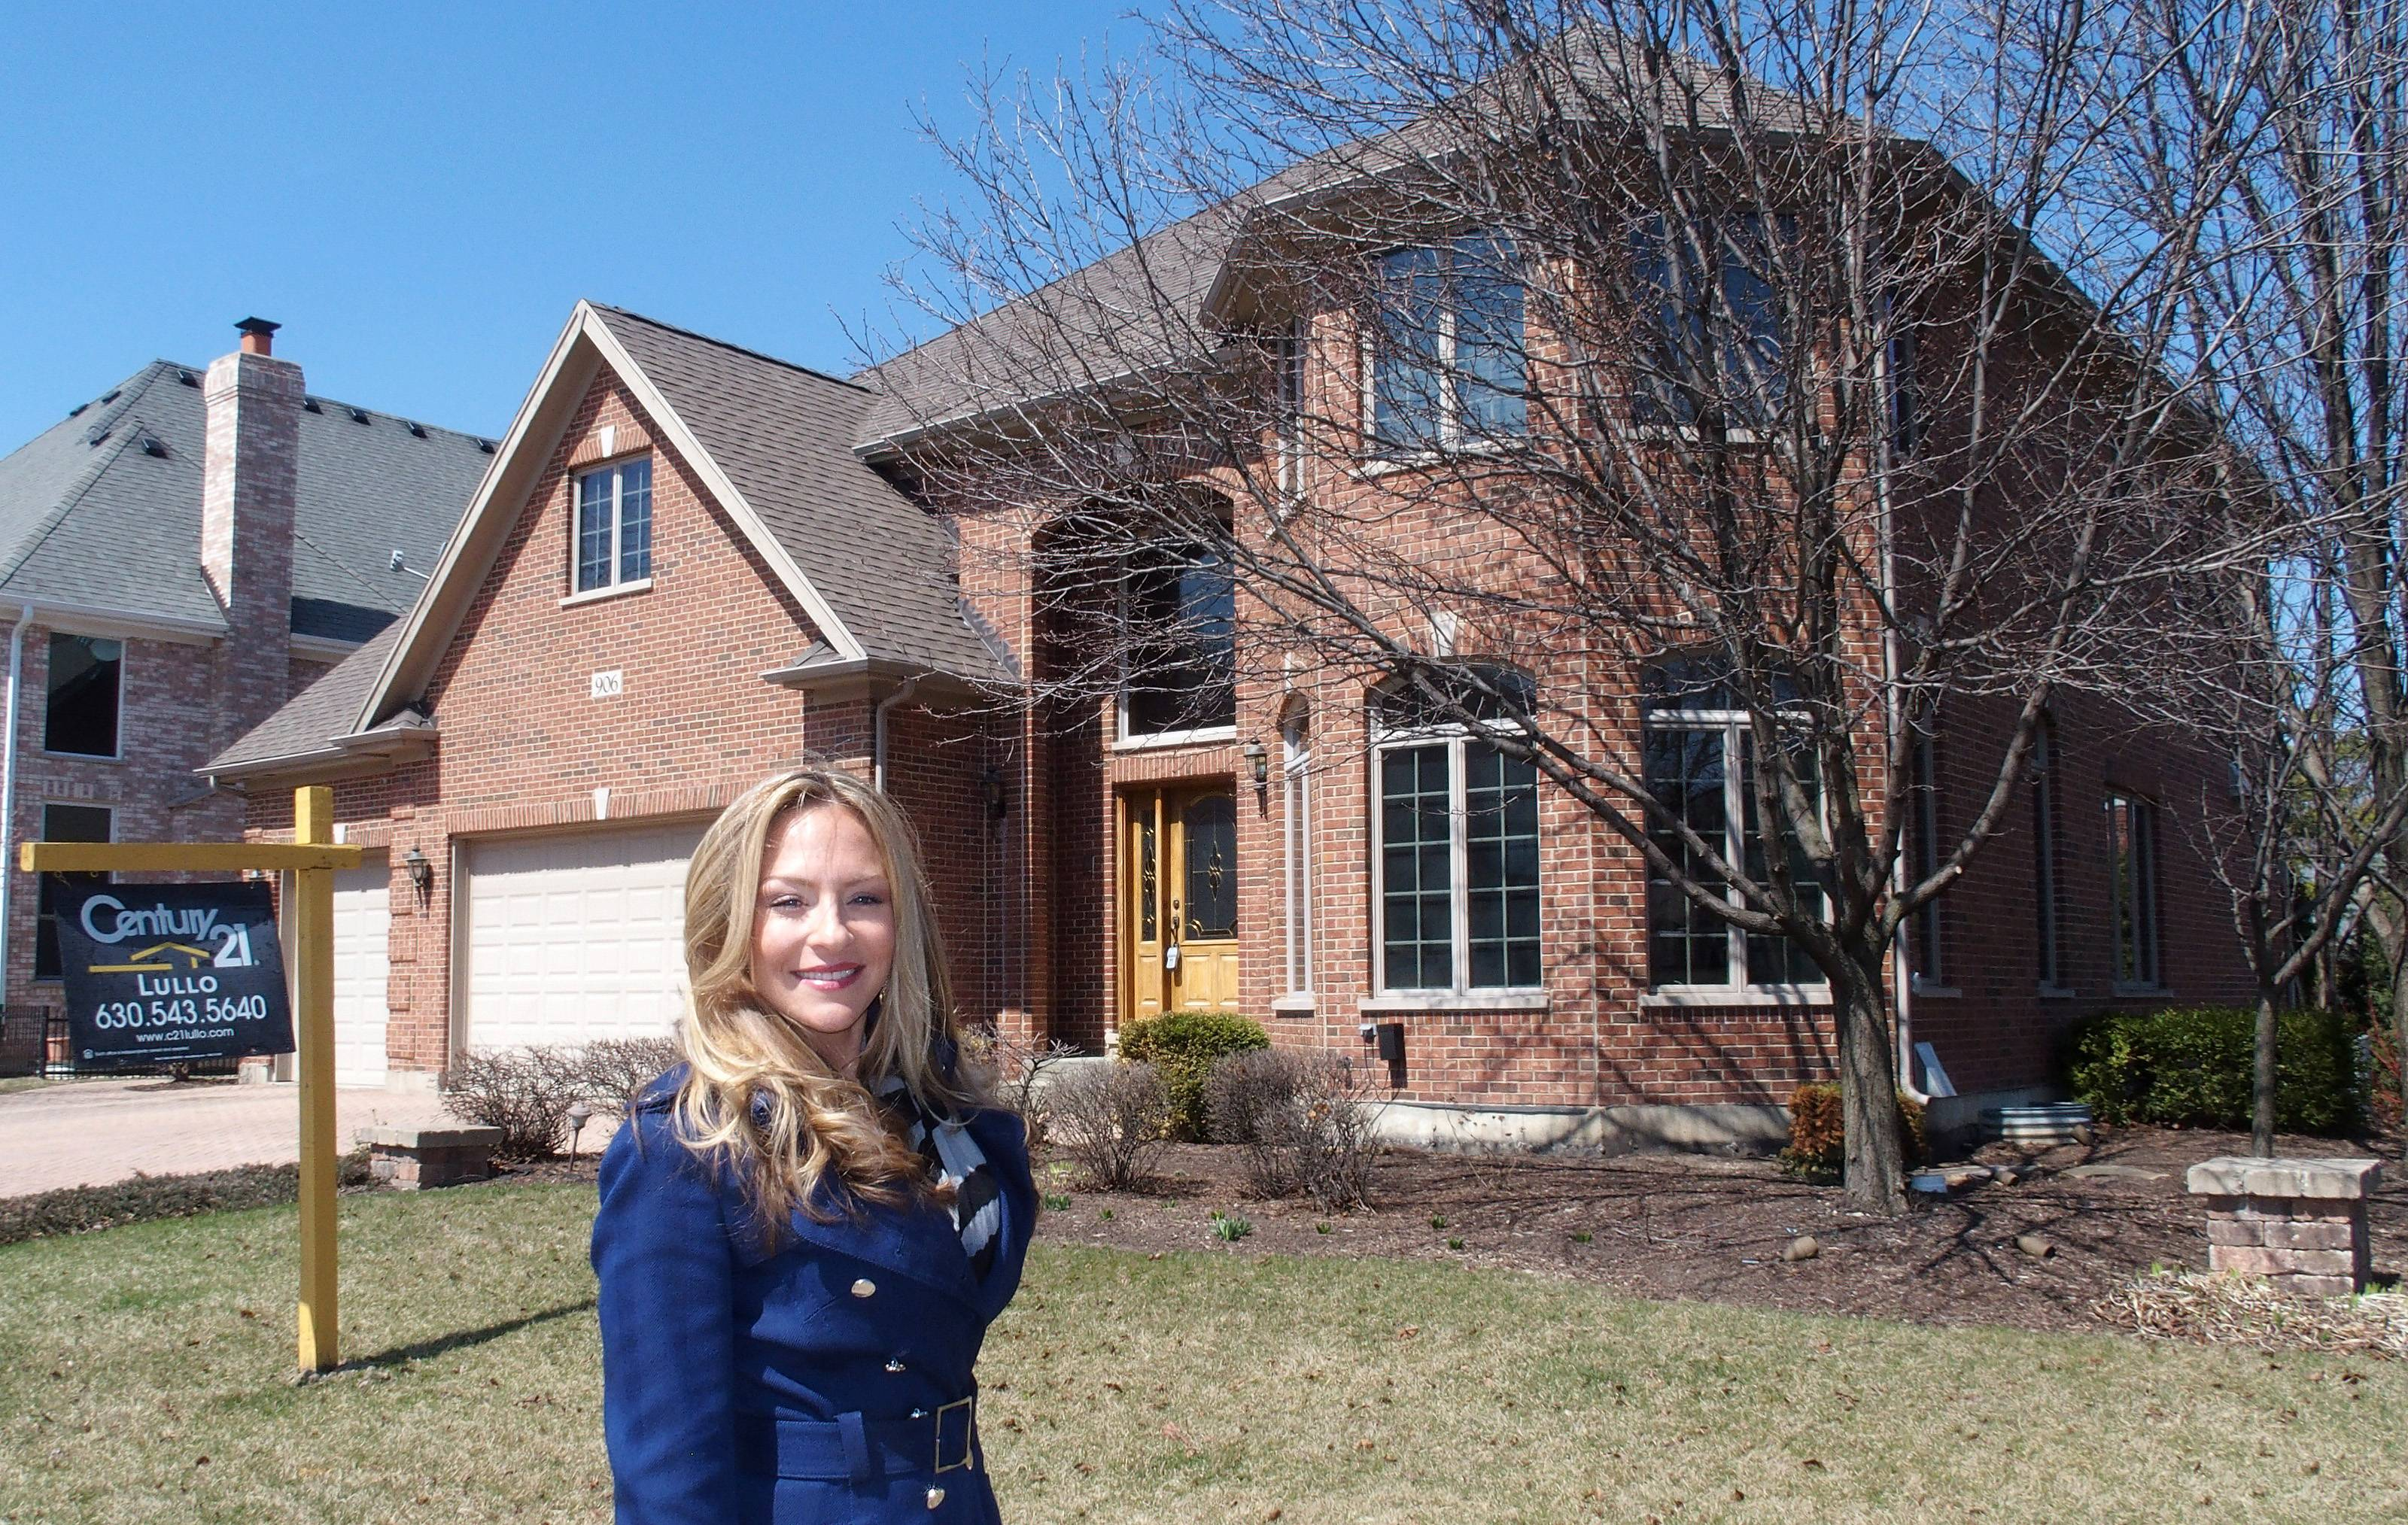 Realtor Deanna Lullo in front of a home she has listed. Lullo says more families are opting to buy homes to accommodate three generations.